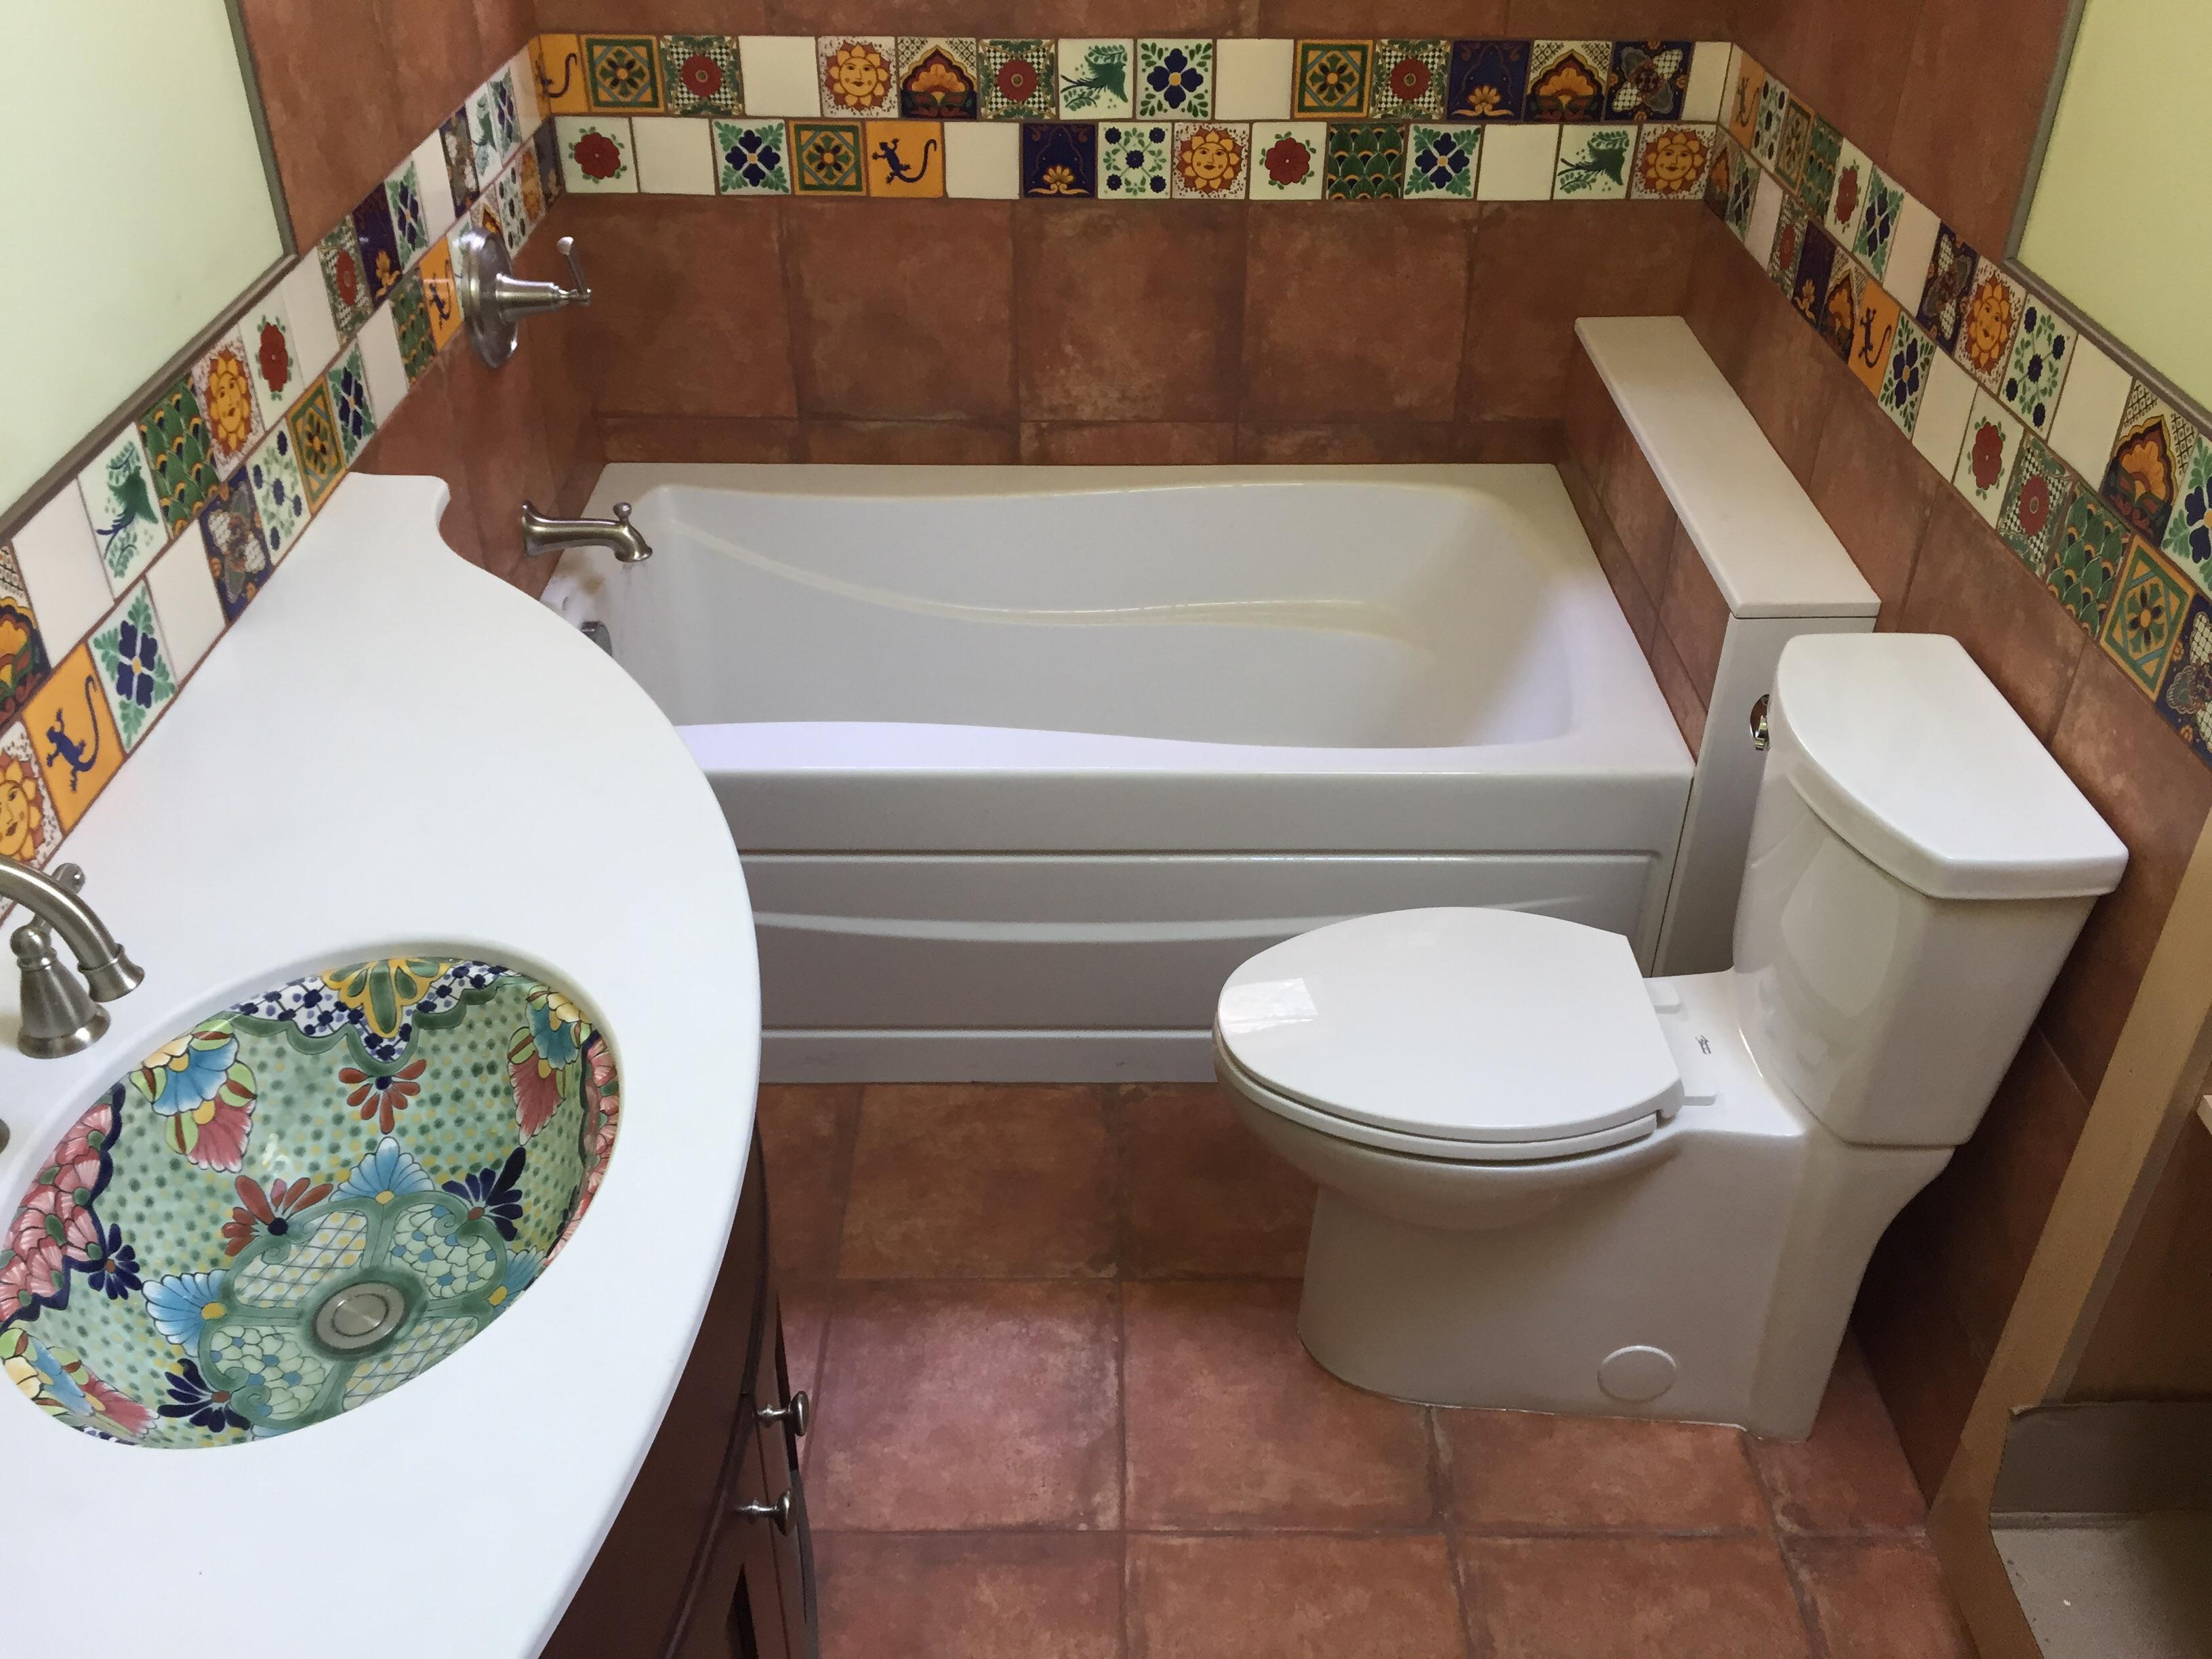 Finished plumbing for new home in Ithaca NY ( tile work by others)